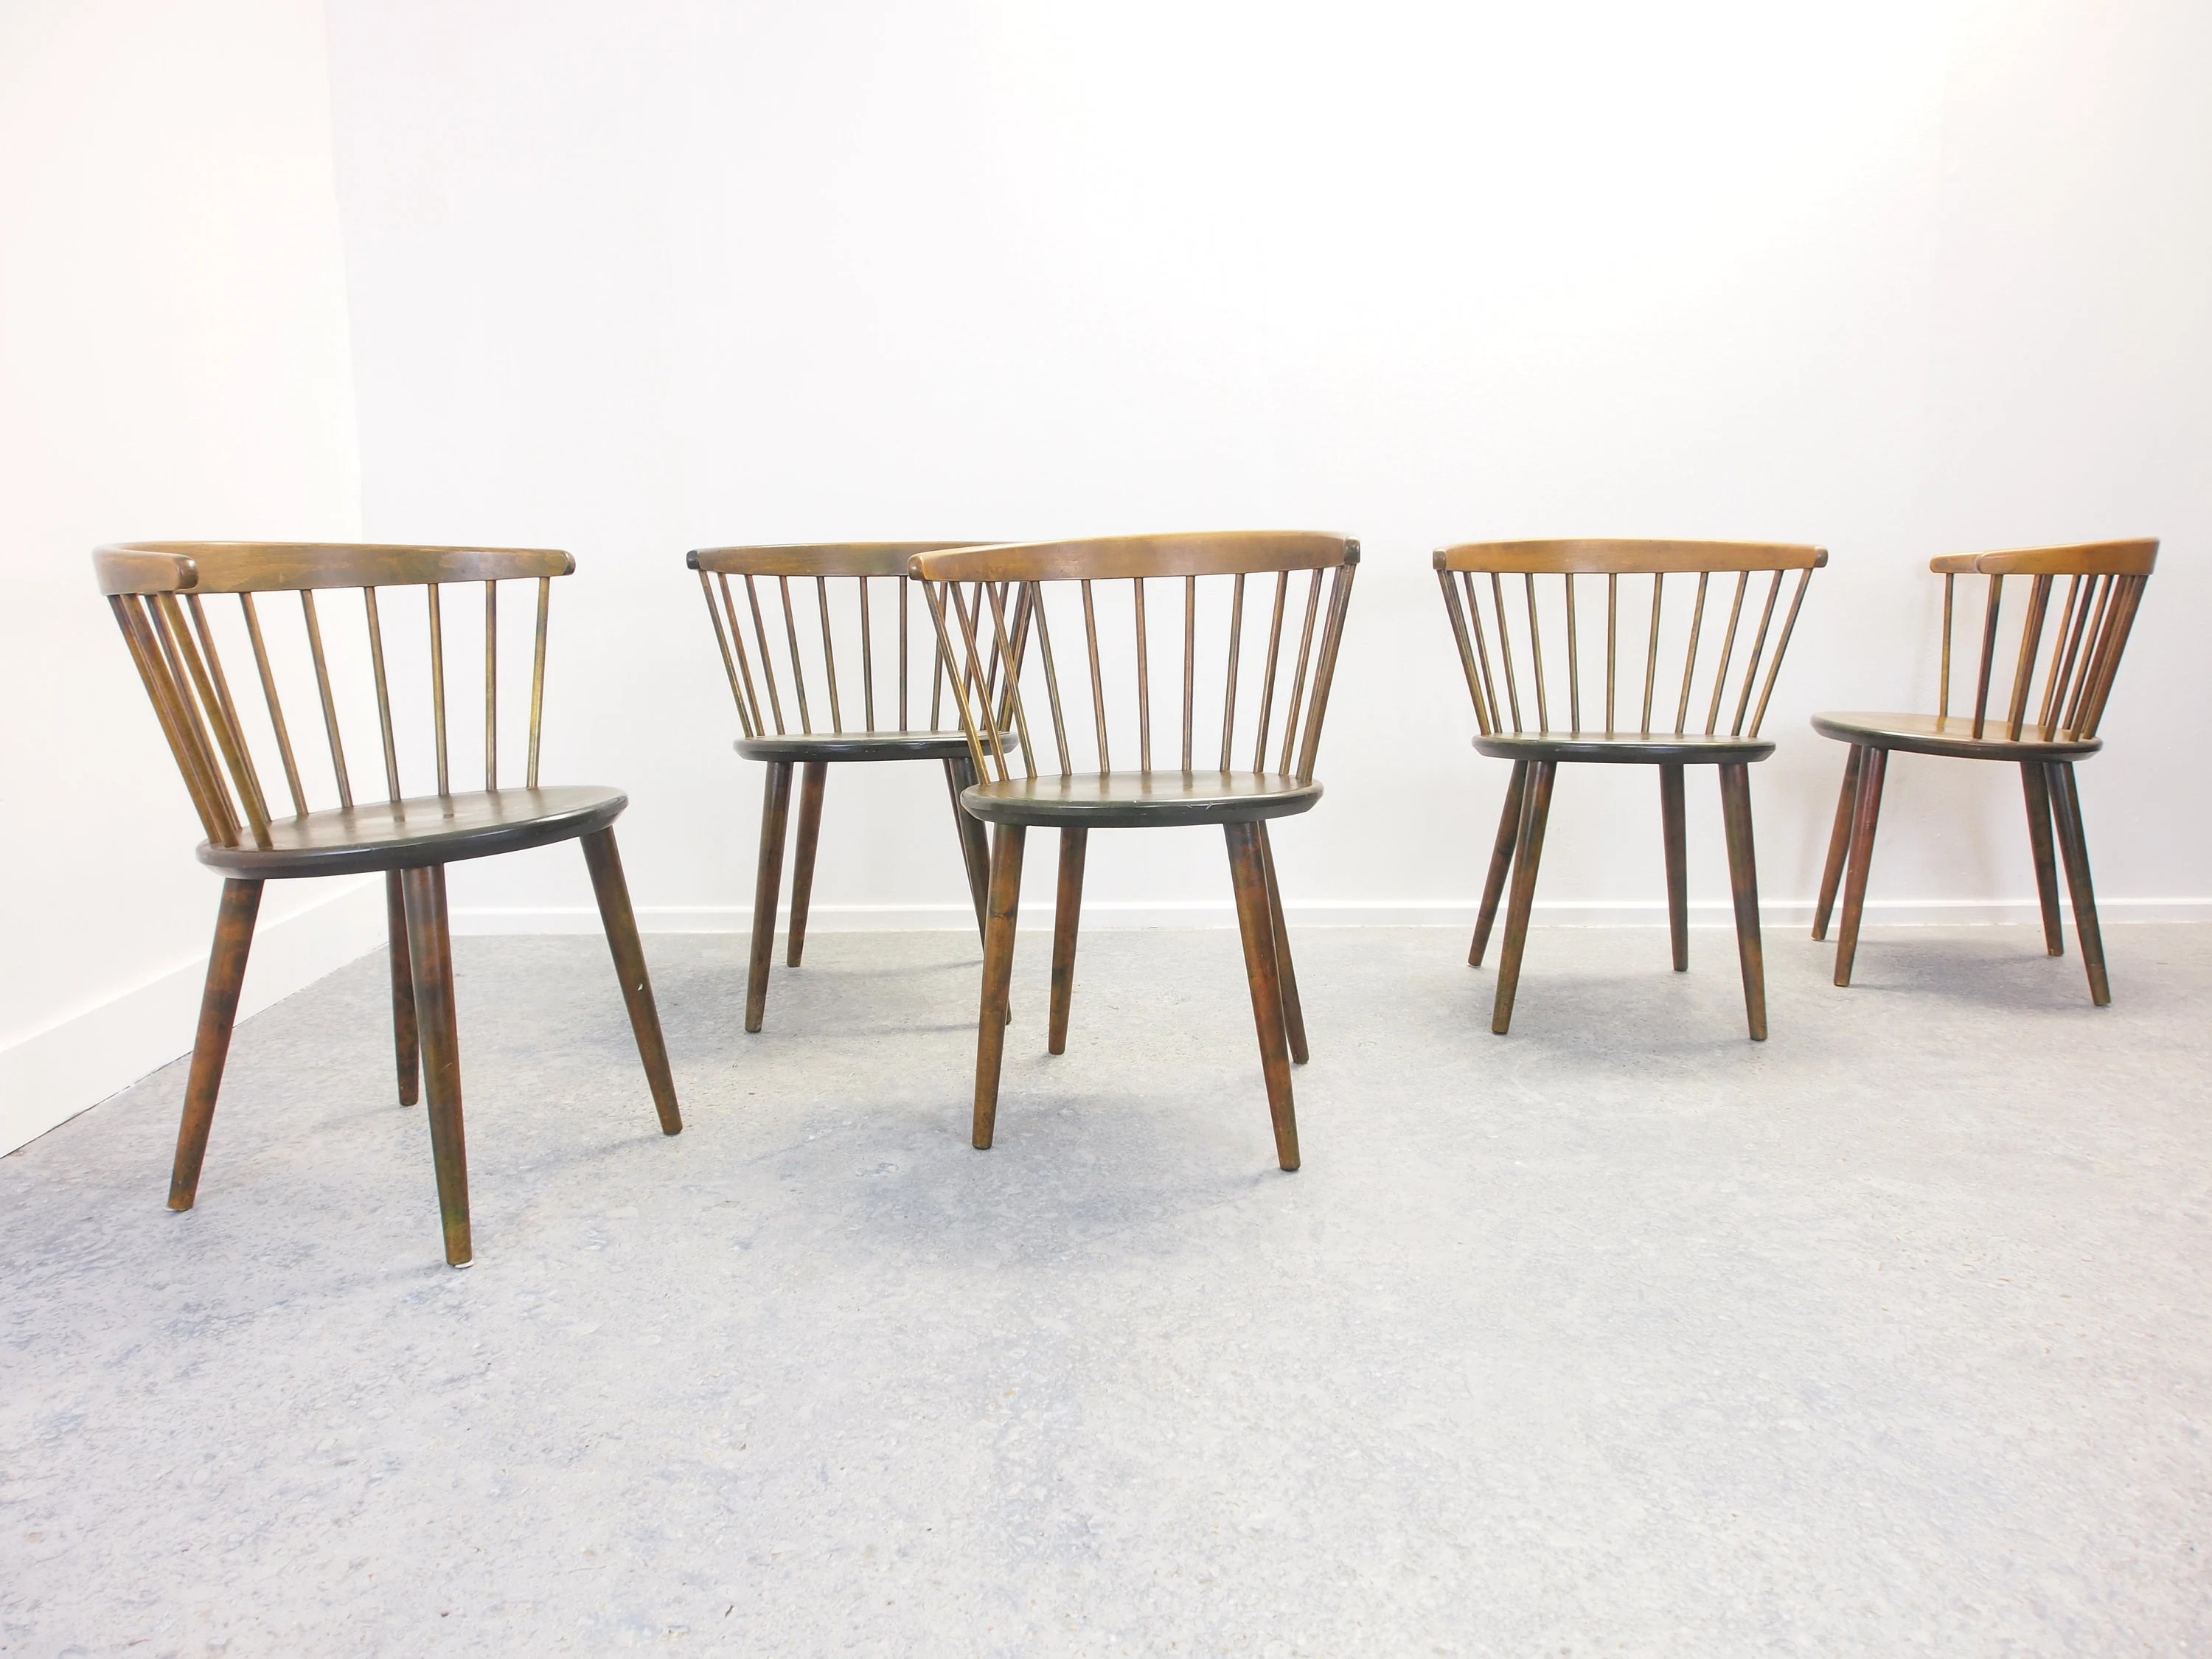 wooden chairs pictures garden chair covers from argos etsy nesto pastoe vintage mid century by yngve ekstrom